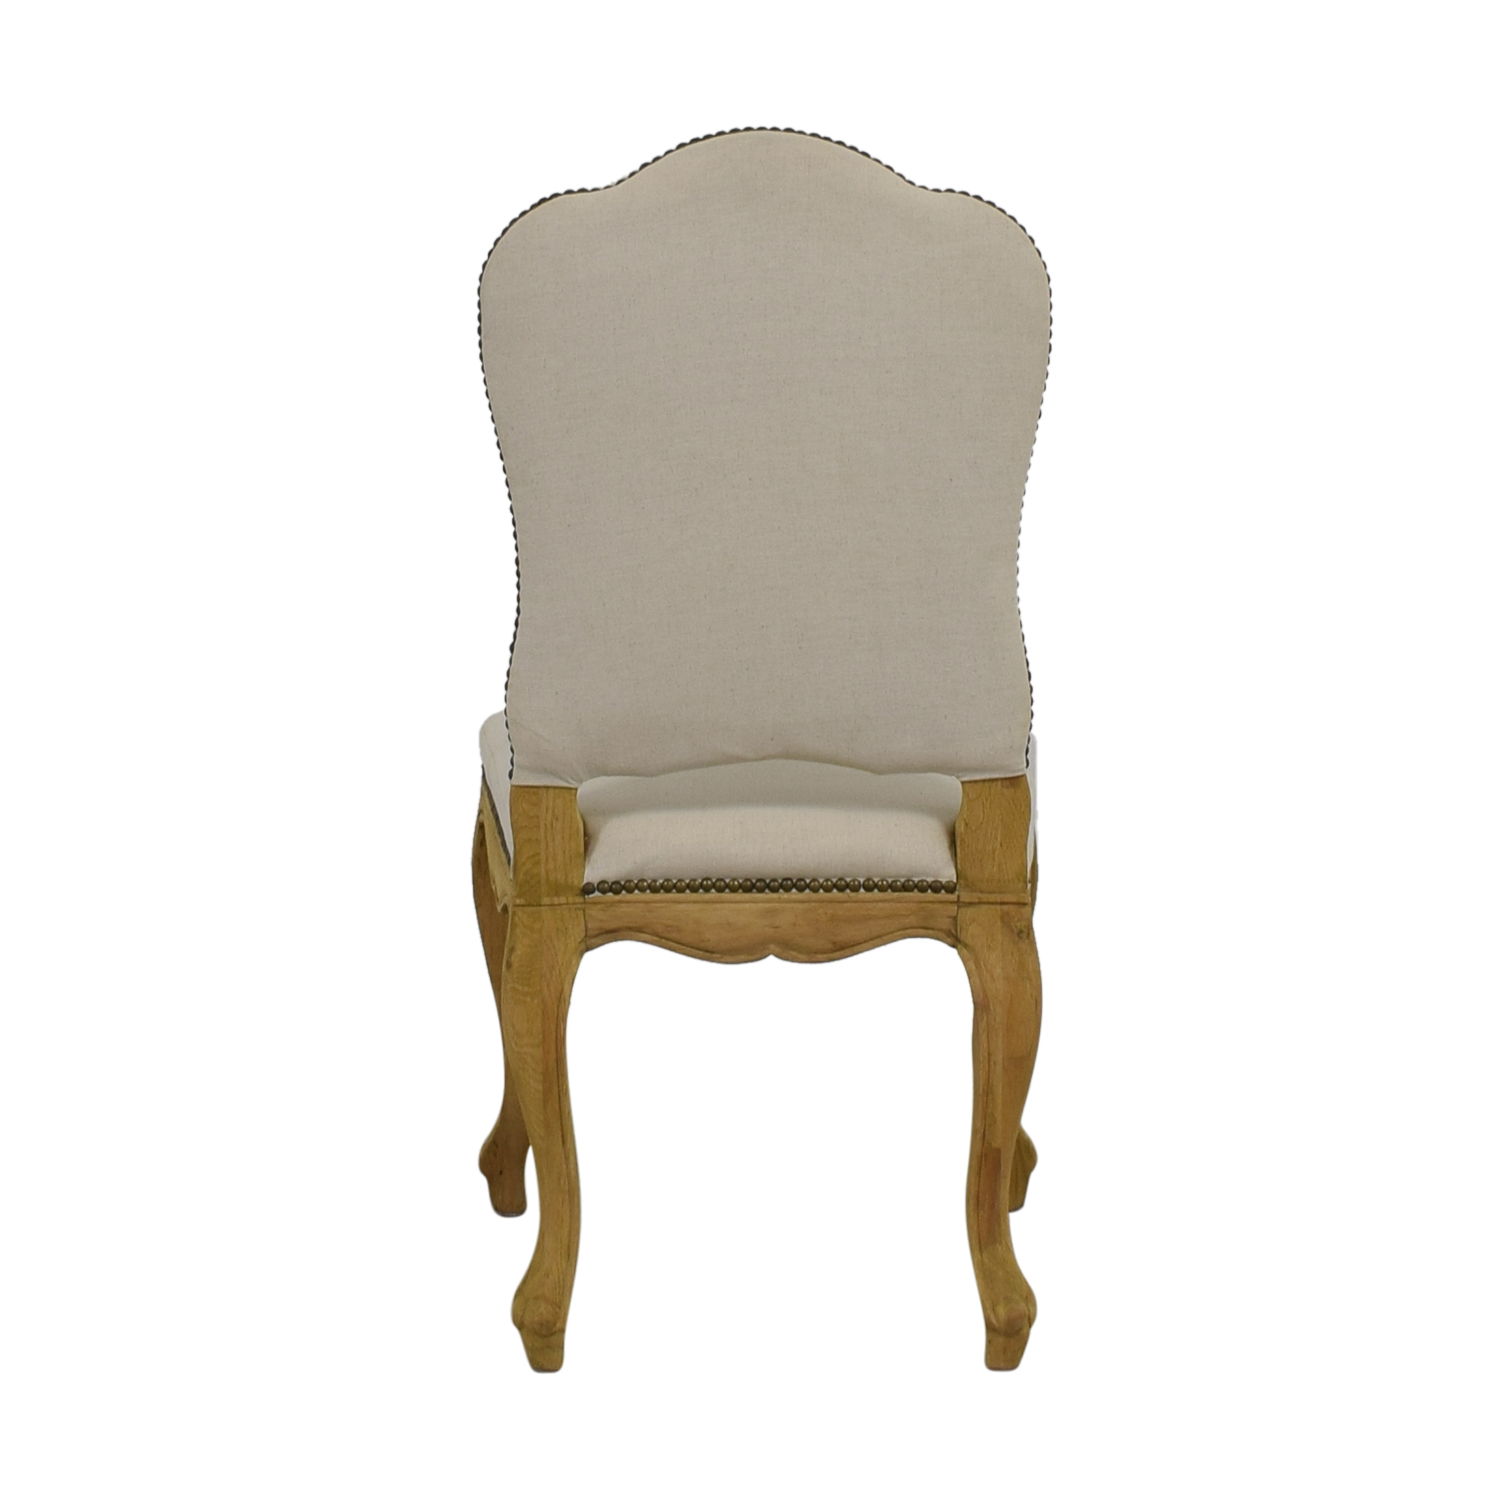 Restoration Hardware Restoration Hardware Beige Nailhead Accent Chair for sale